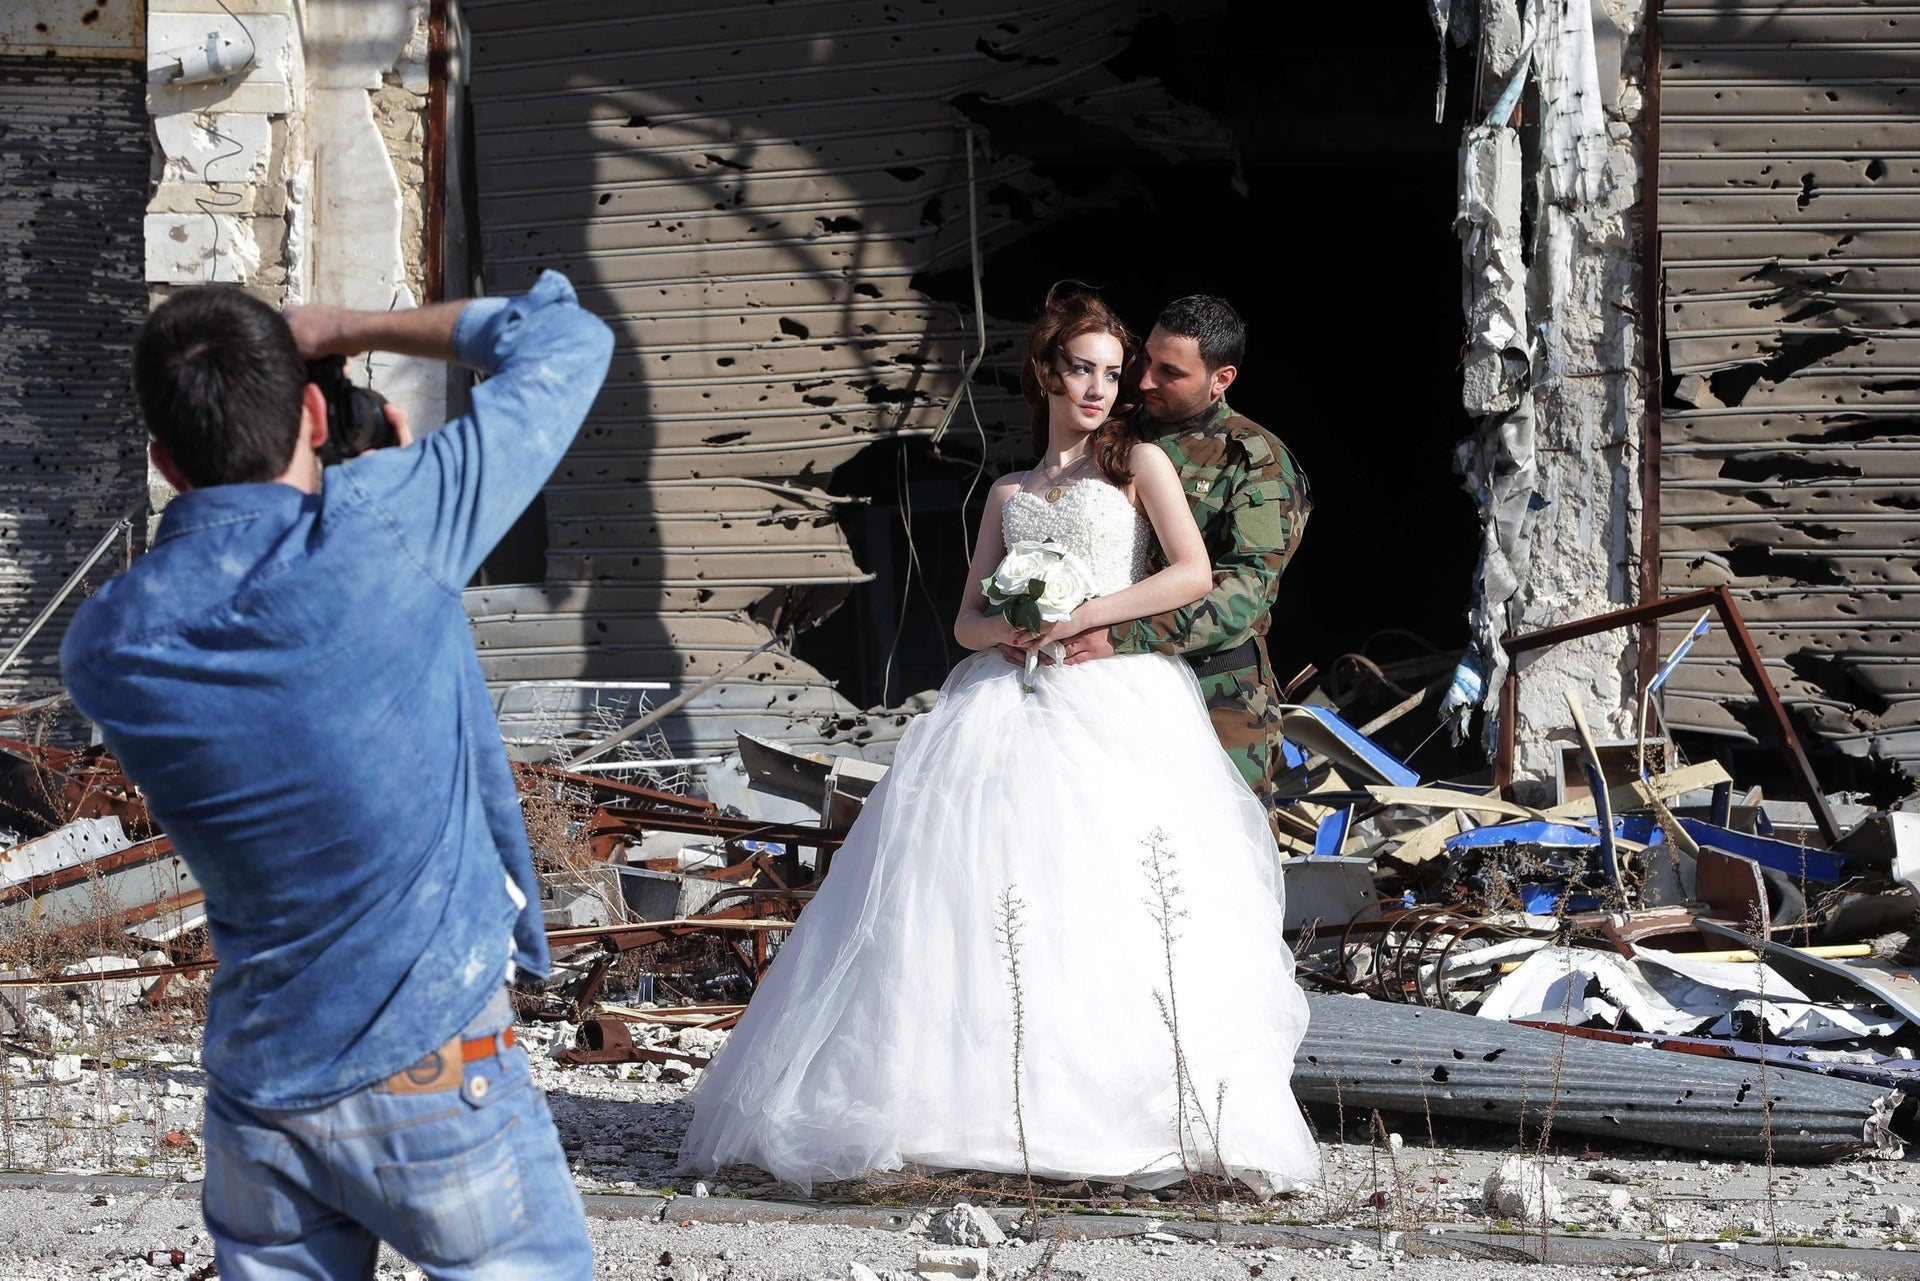 A photographer shoots couple Nada Merhi and Hassan Youssef against an unusual background in Homs, Syria, on February 5, 2016.